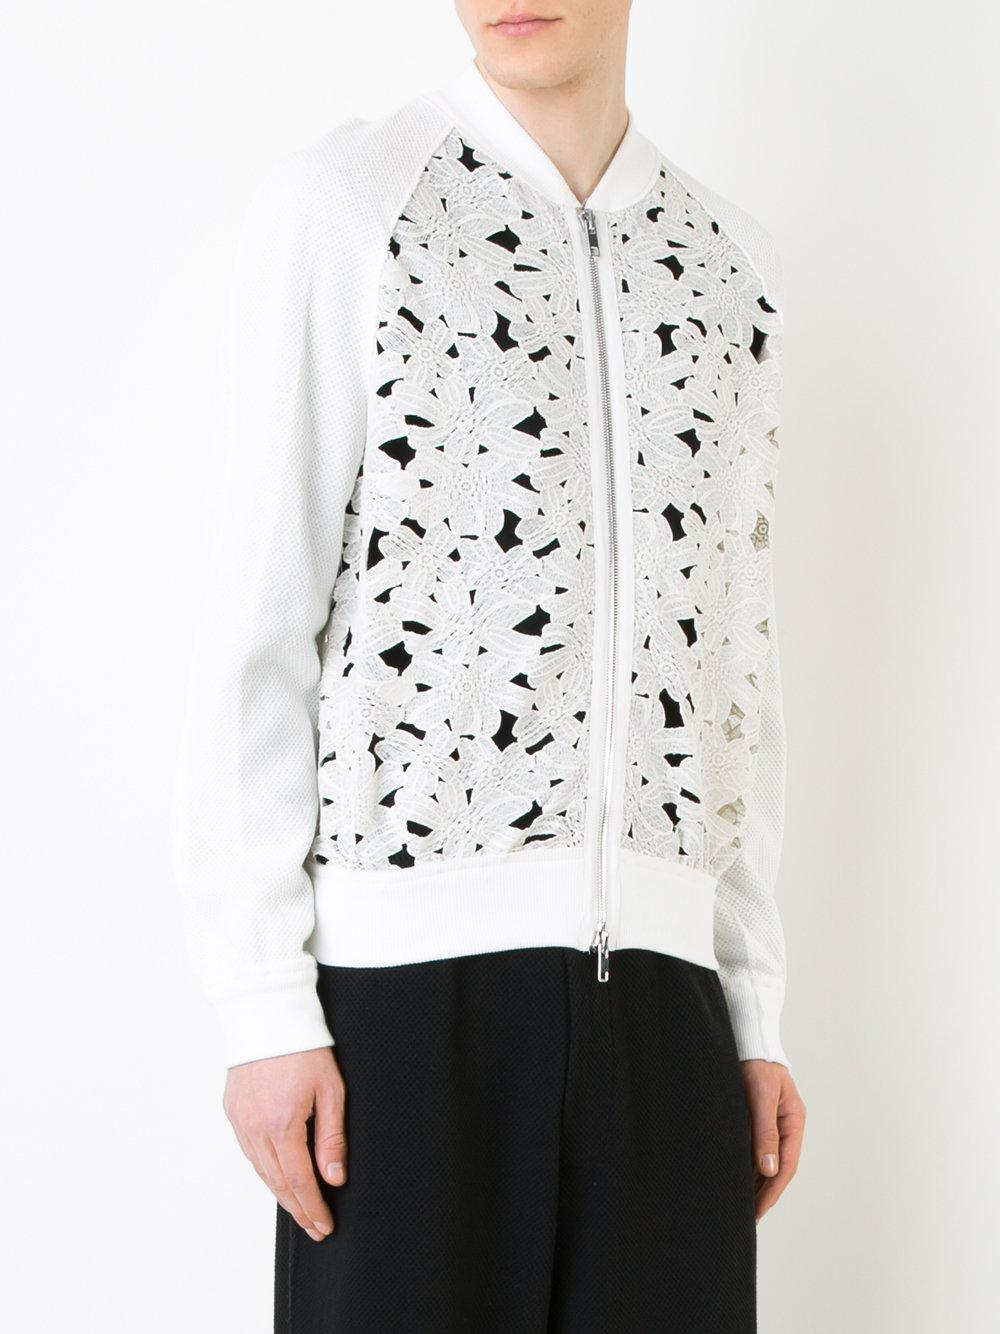 Marna Ro Floral Lace Bomber Jacket in White for Men